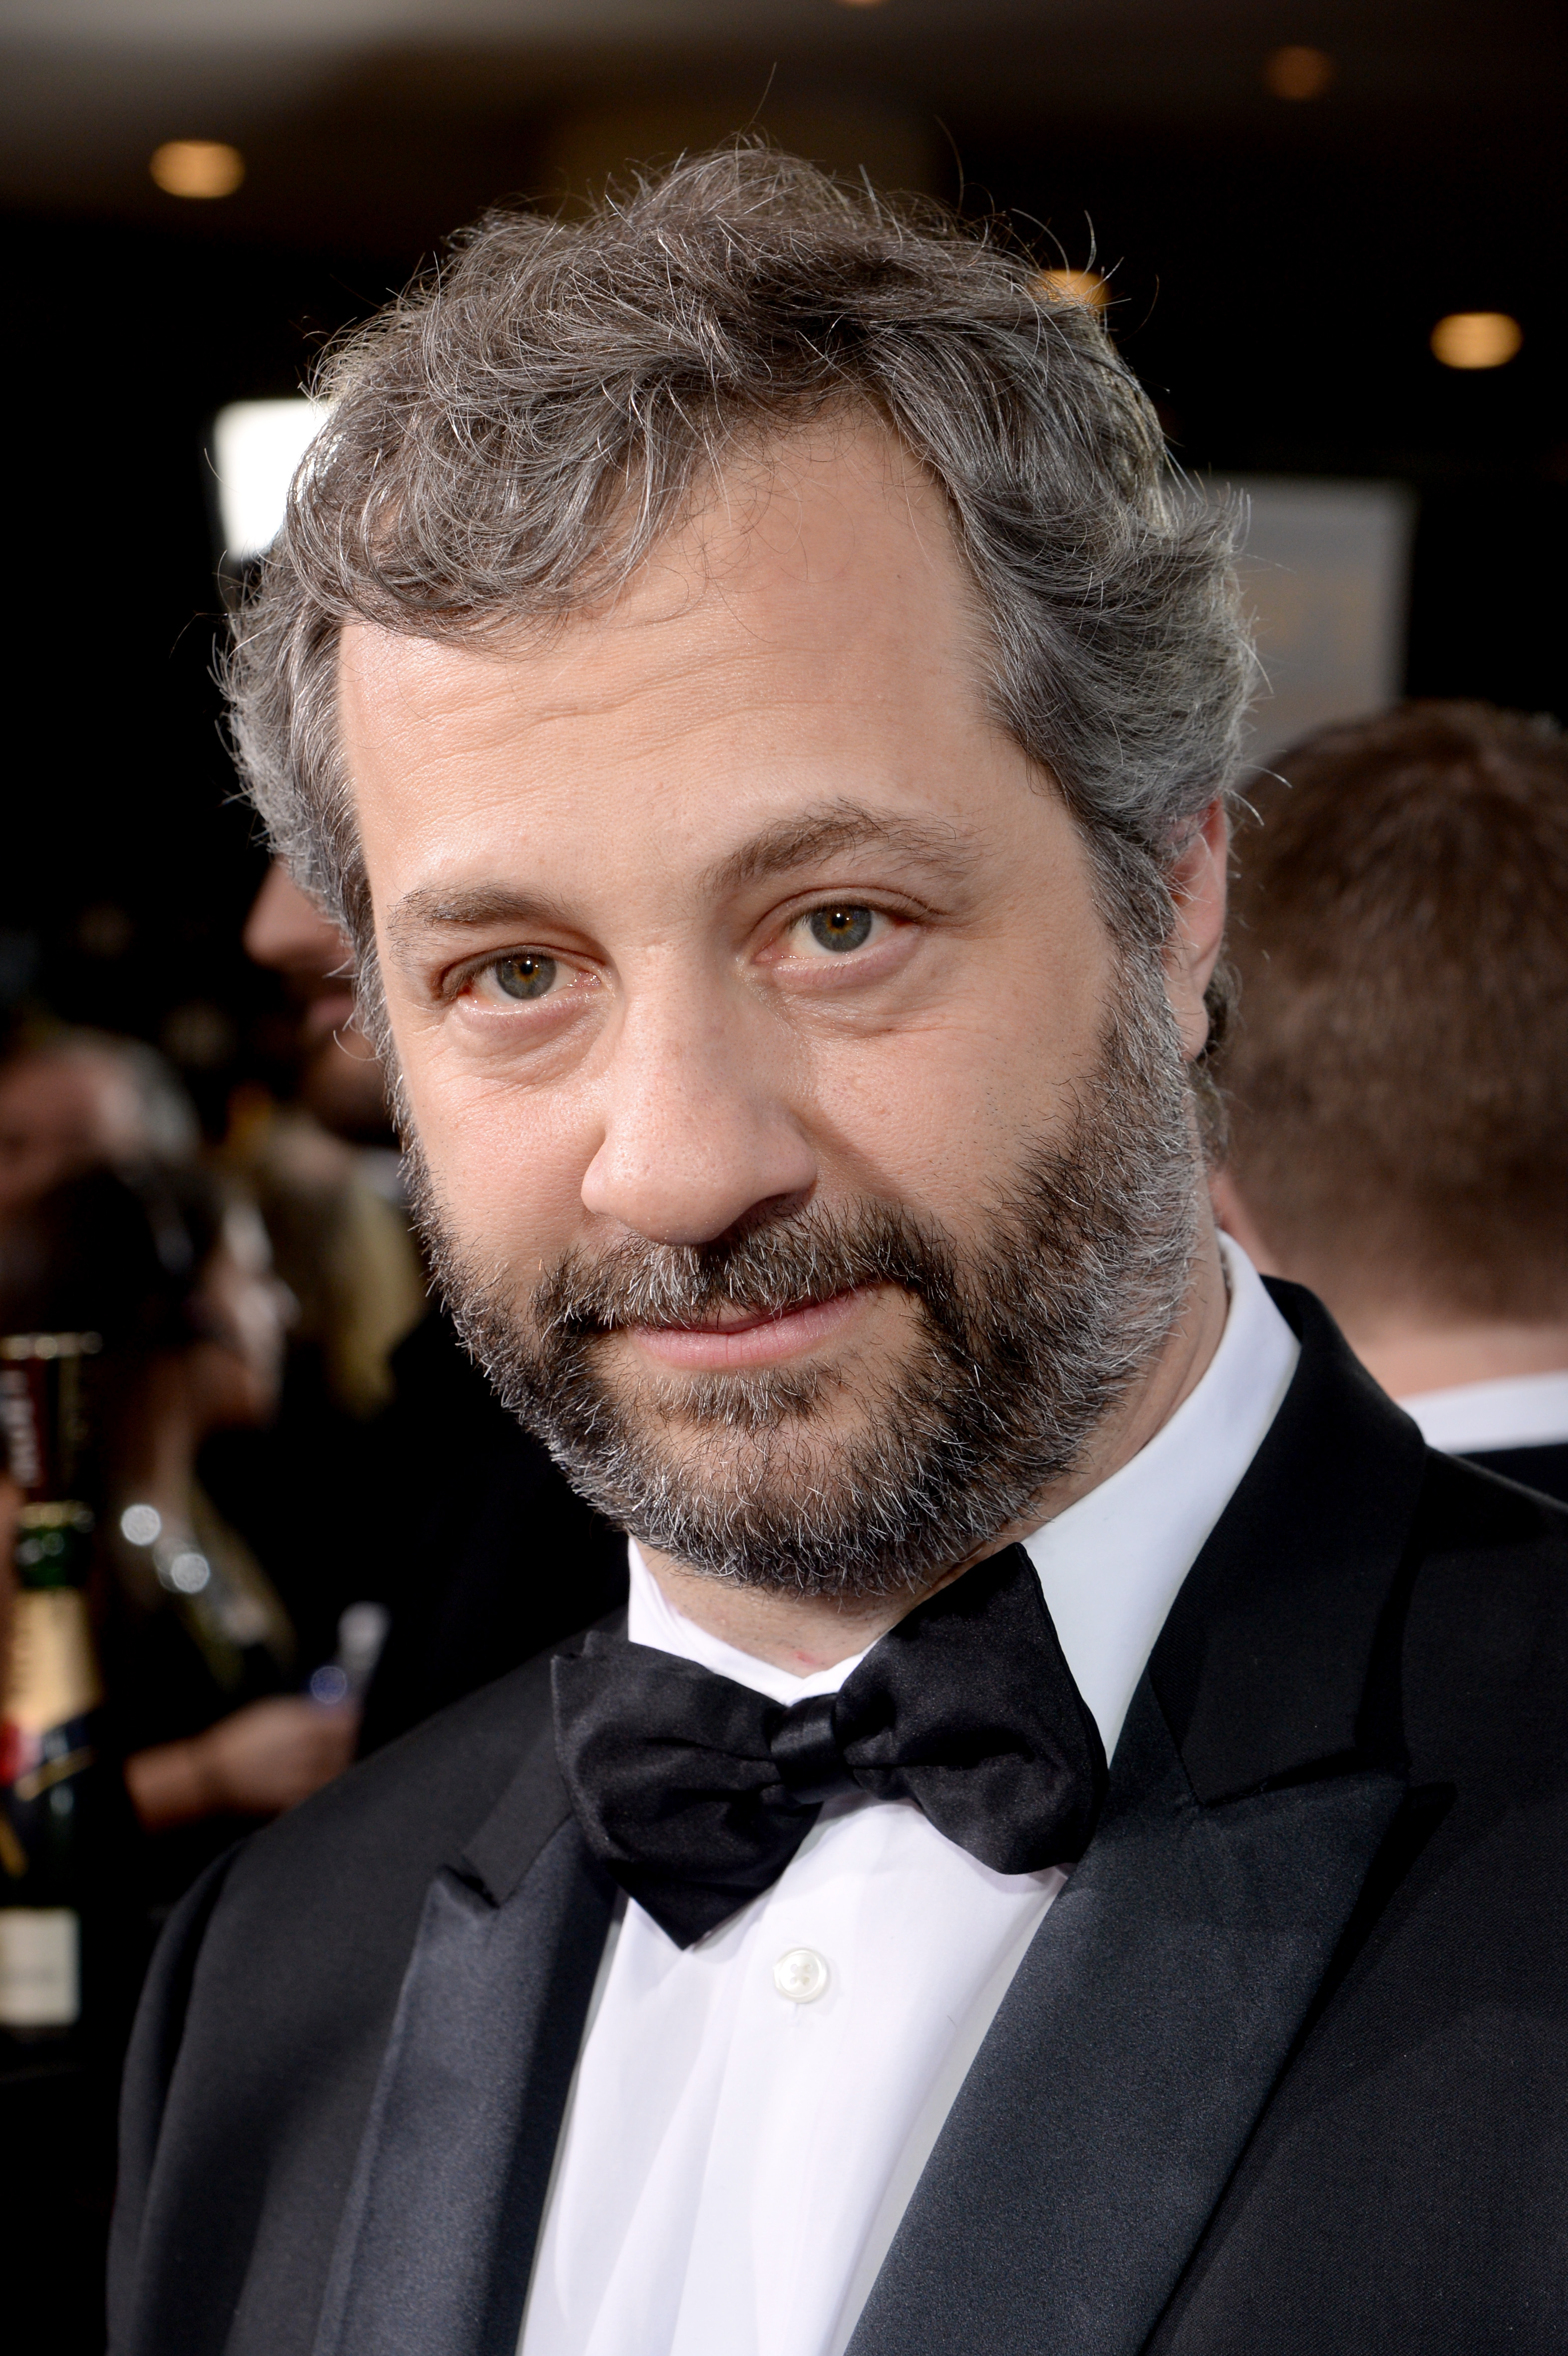 Director Judd Apatow attends the 72nd Annual Golden Globe Awards at The Beverly Hilton Hotel on Jan. 11, in California.